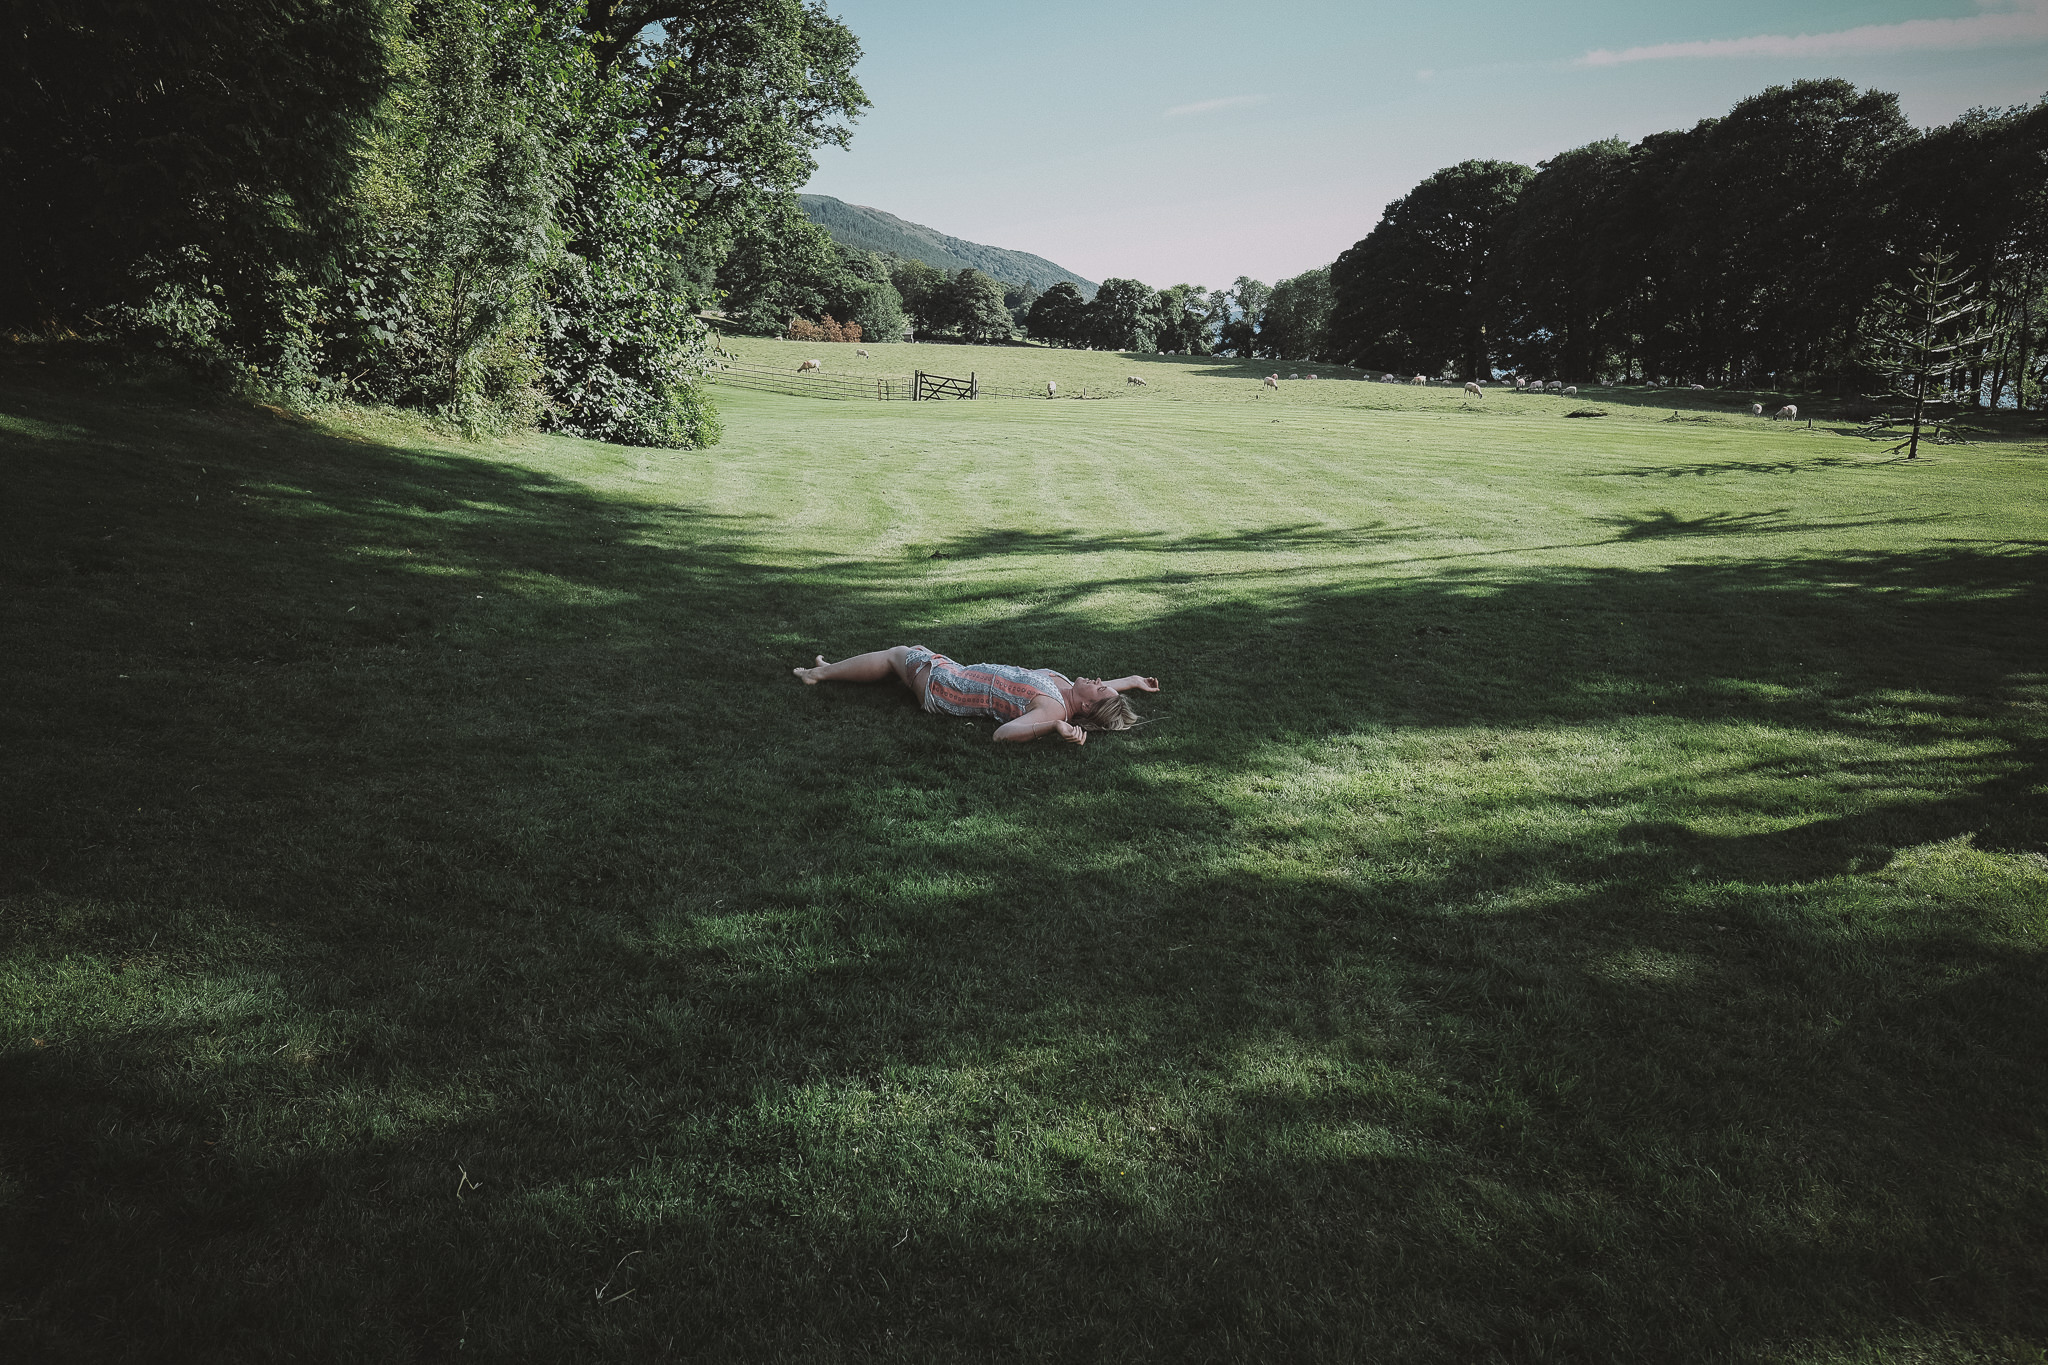 A wedding guest rolls down a hill at a Lake District wedding